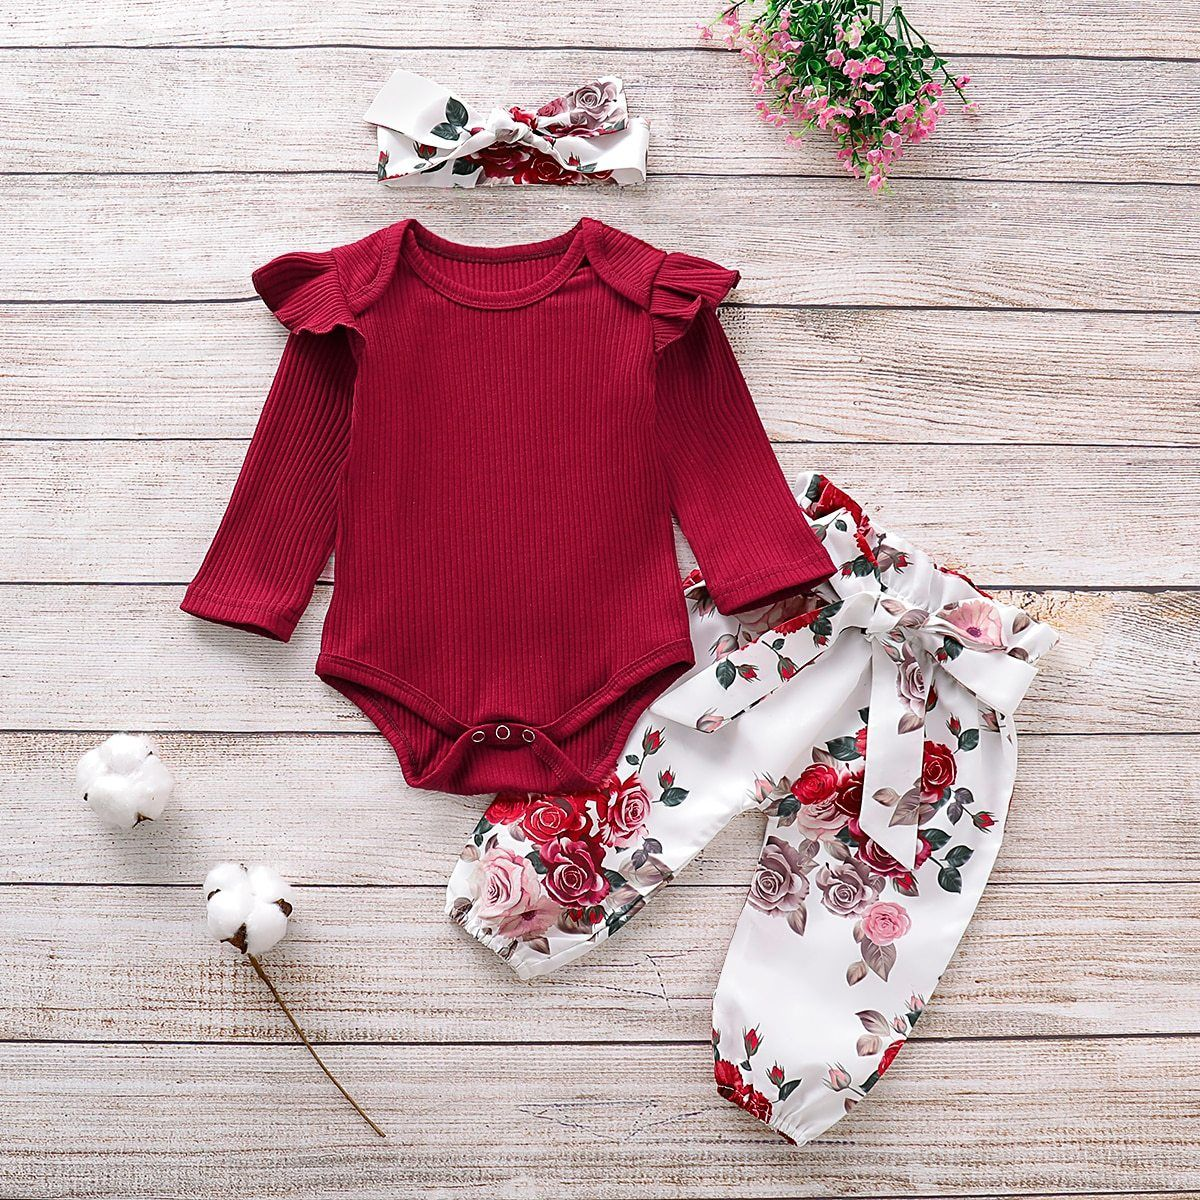 Baby Girl Outfits Winter Long Sleeve Romper Top Floral Pants Bow Headband Clothes Set